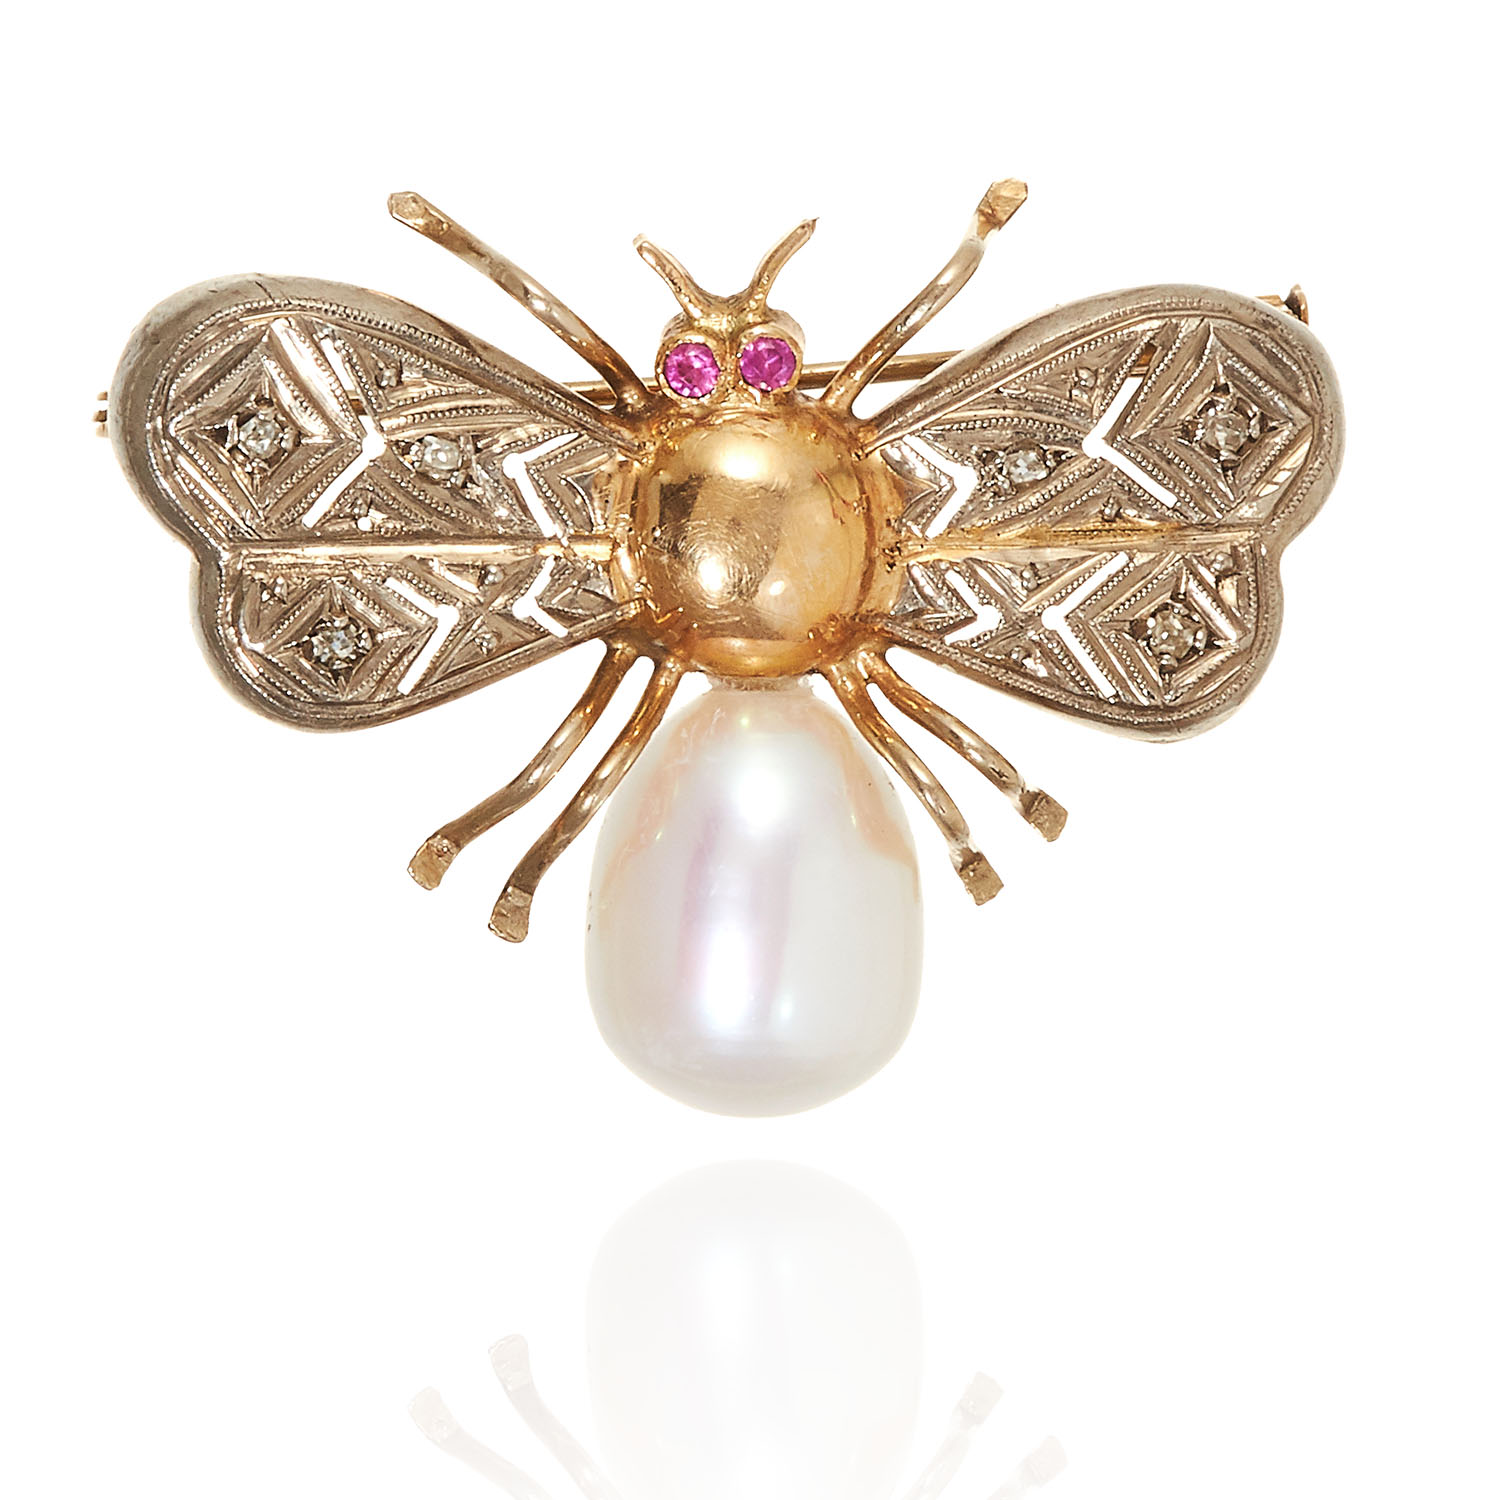 AN ANTIQUE PEARL, DIAMOND AND RUBY BEE BROOCH, CIRCA 1940, in 18ct yellow gold, designed as bee with